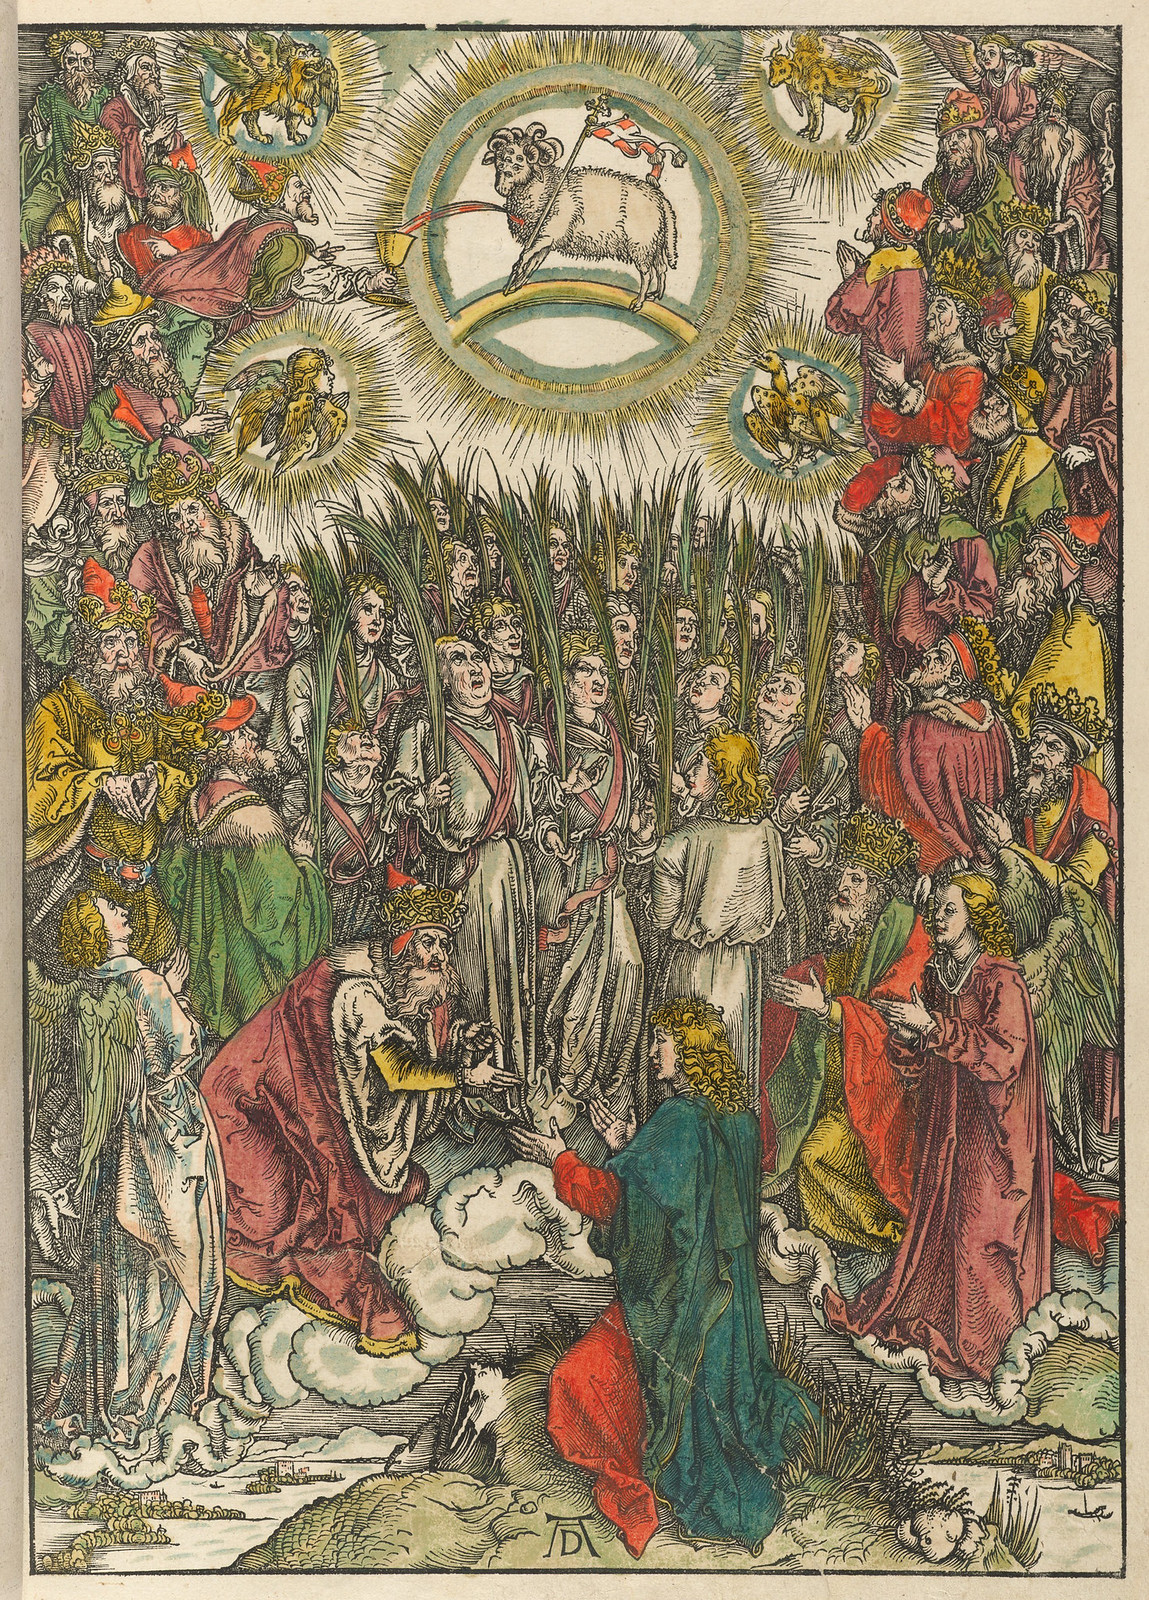 Albrecht Dürer - Adoration of the Lamb, Plate thirteen of fifteen from the Latin edition of The Apocalypse series, hand colored, printed 1511